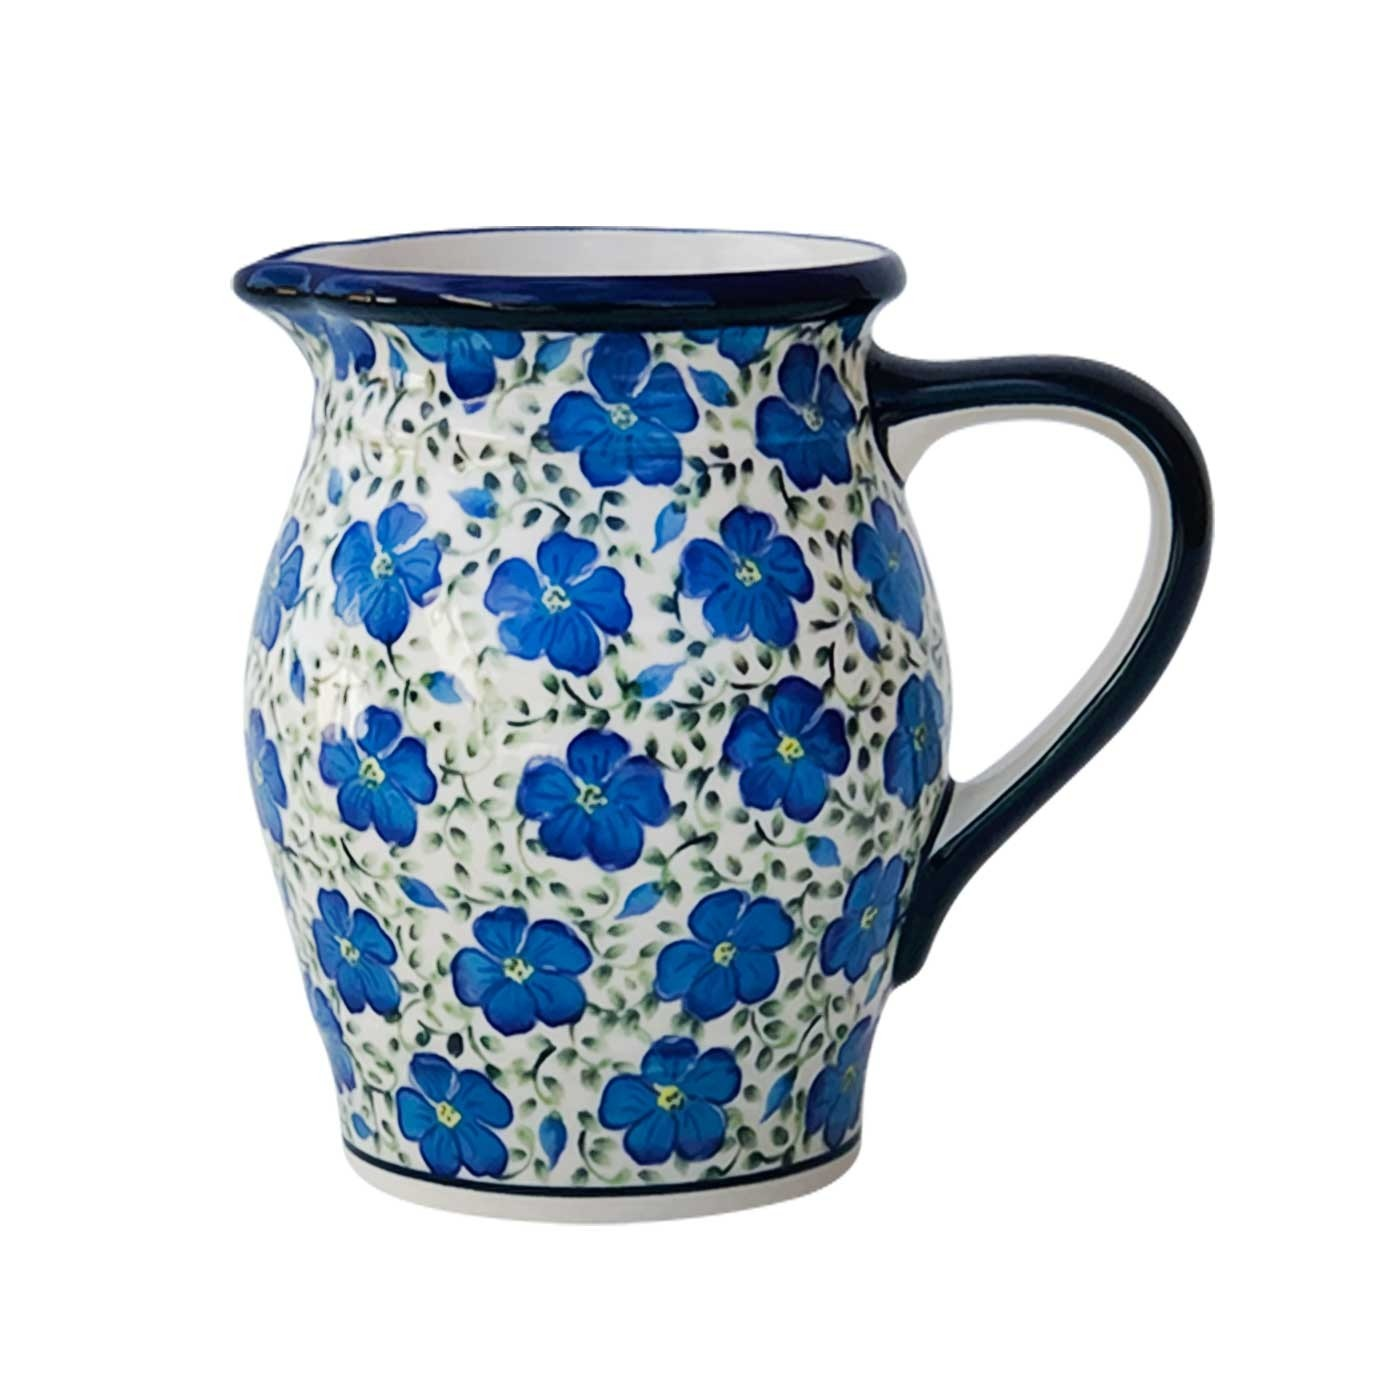 Pottery Avenue BLUE HARMONY 6-Cup Stoneware Pitcher (MD) - 927-352AR BLUE HARMONY